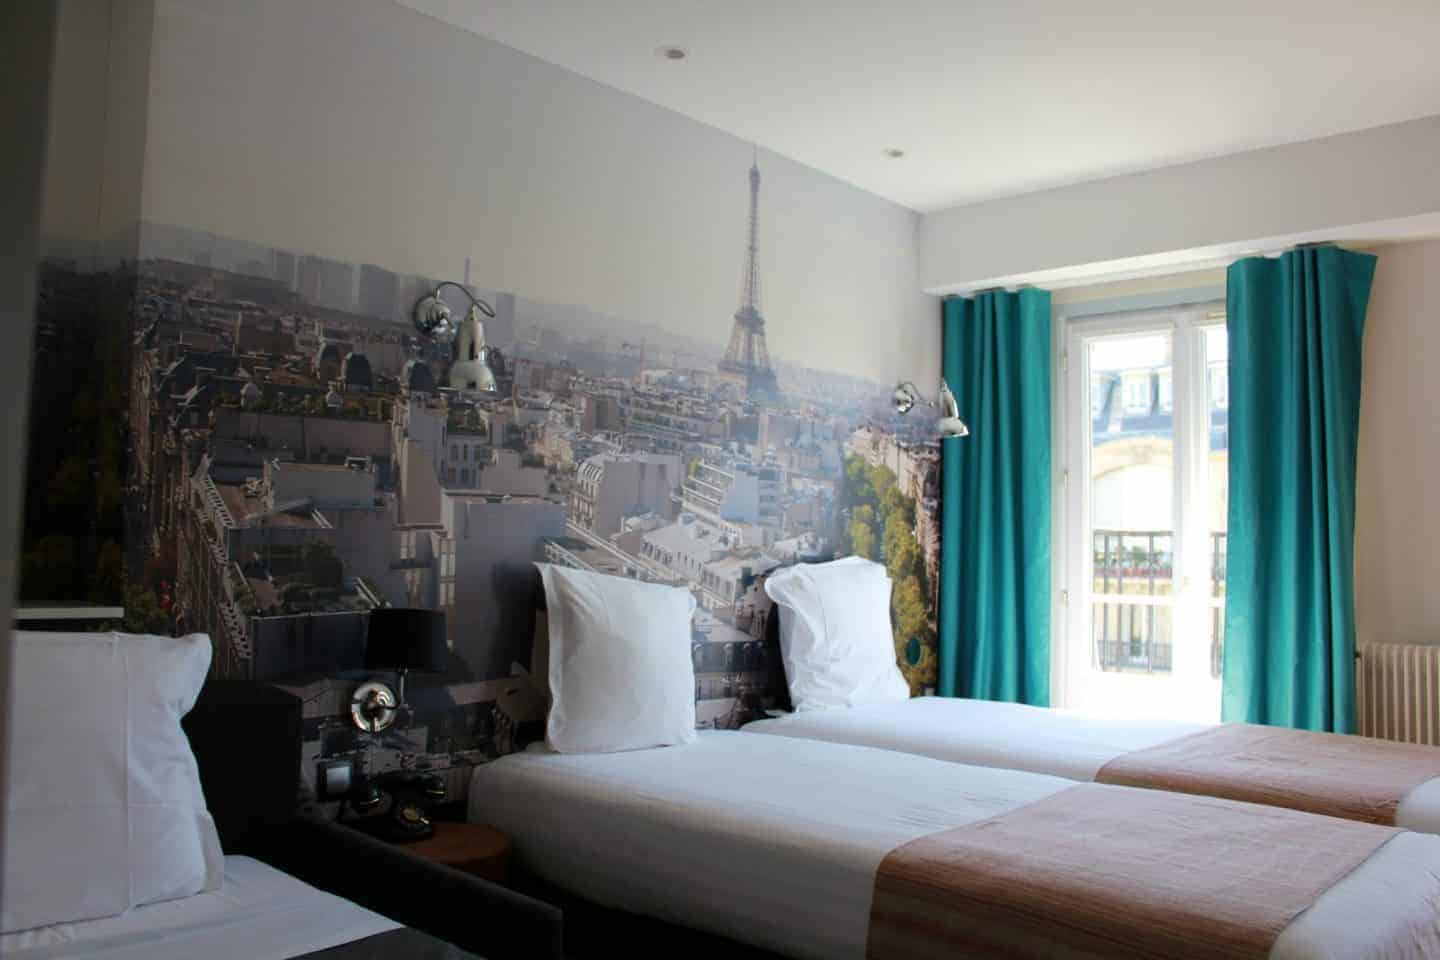 Hotels in Paris, where to stay in Paris, hotel stella, hotel stella etoile paris